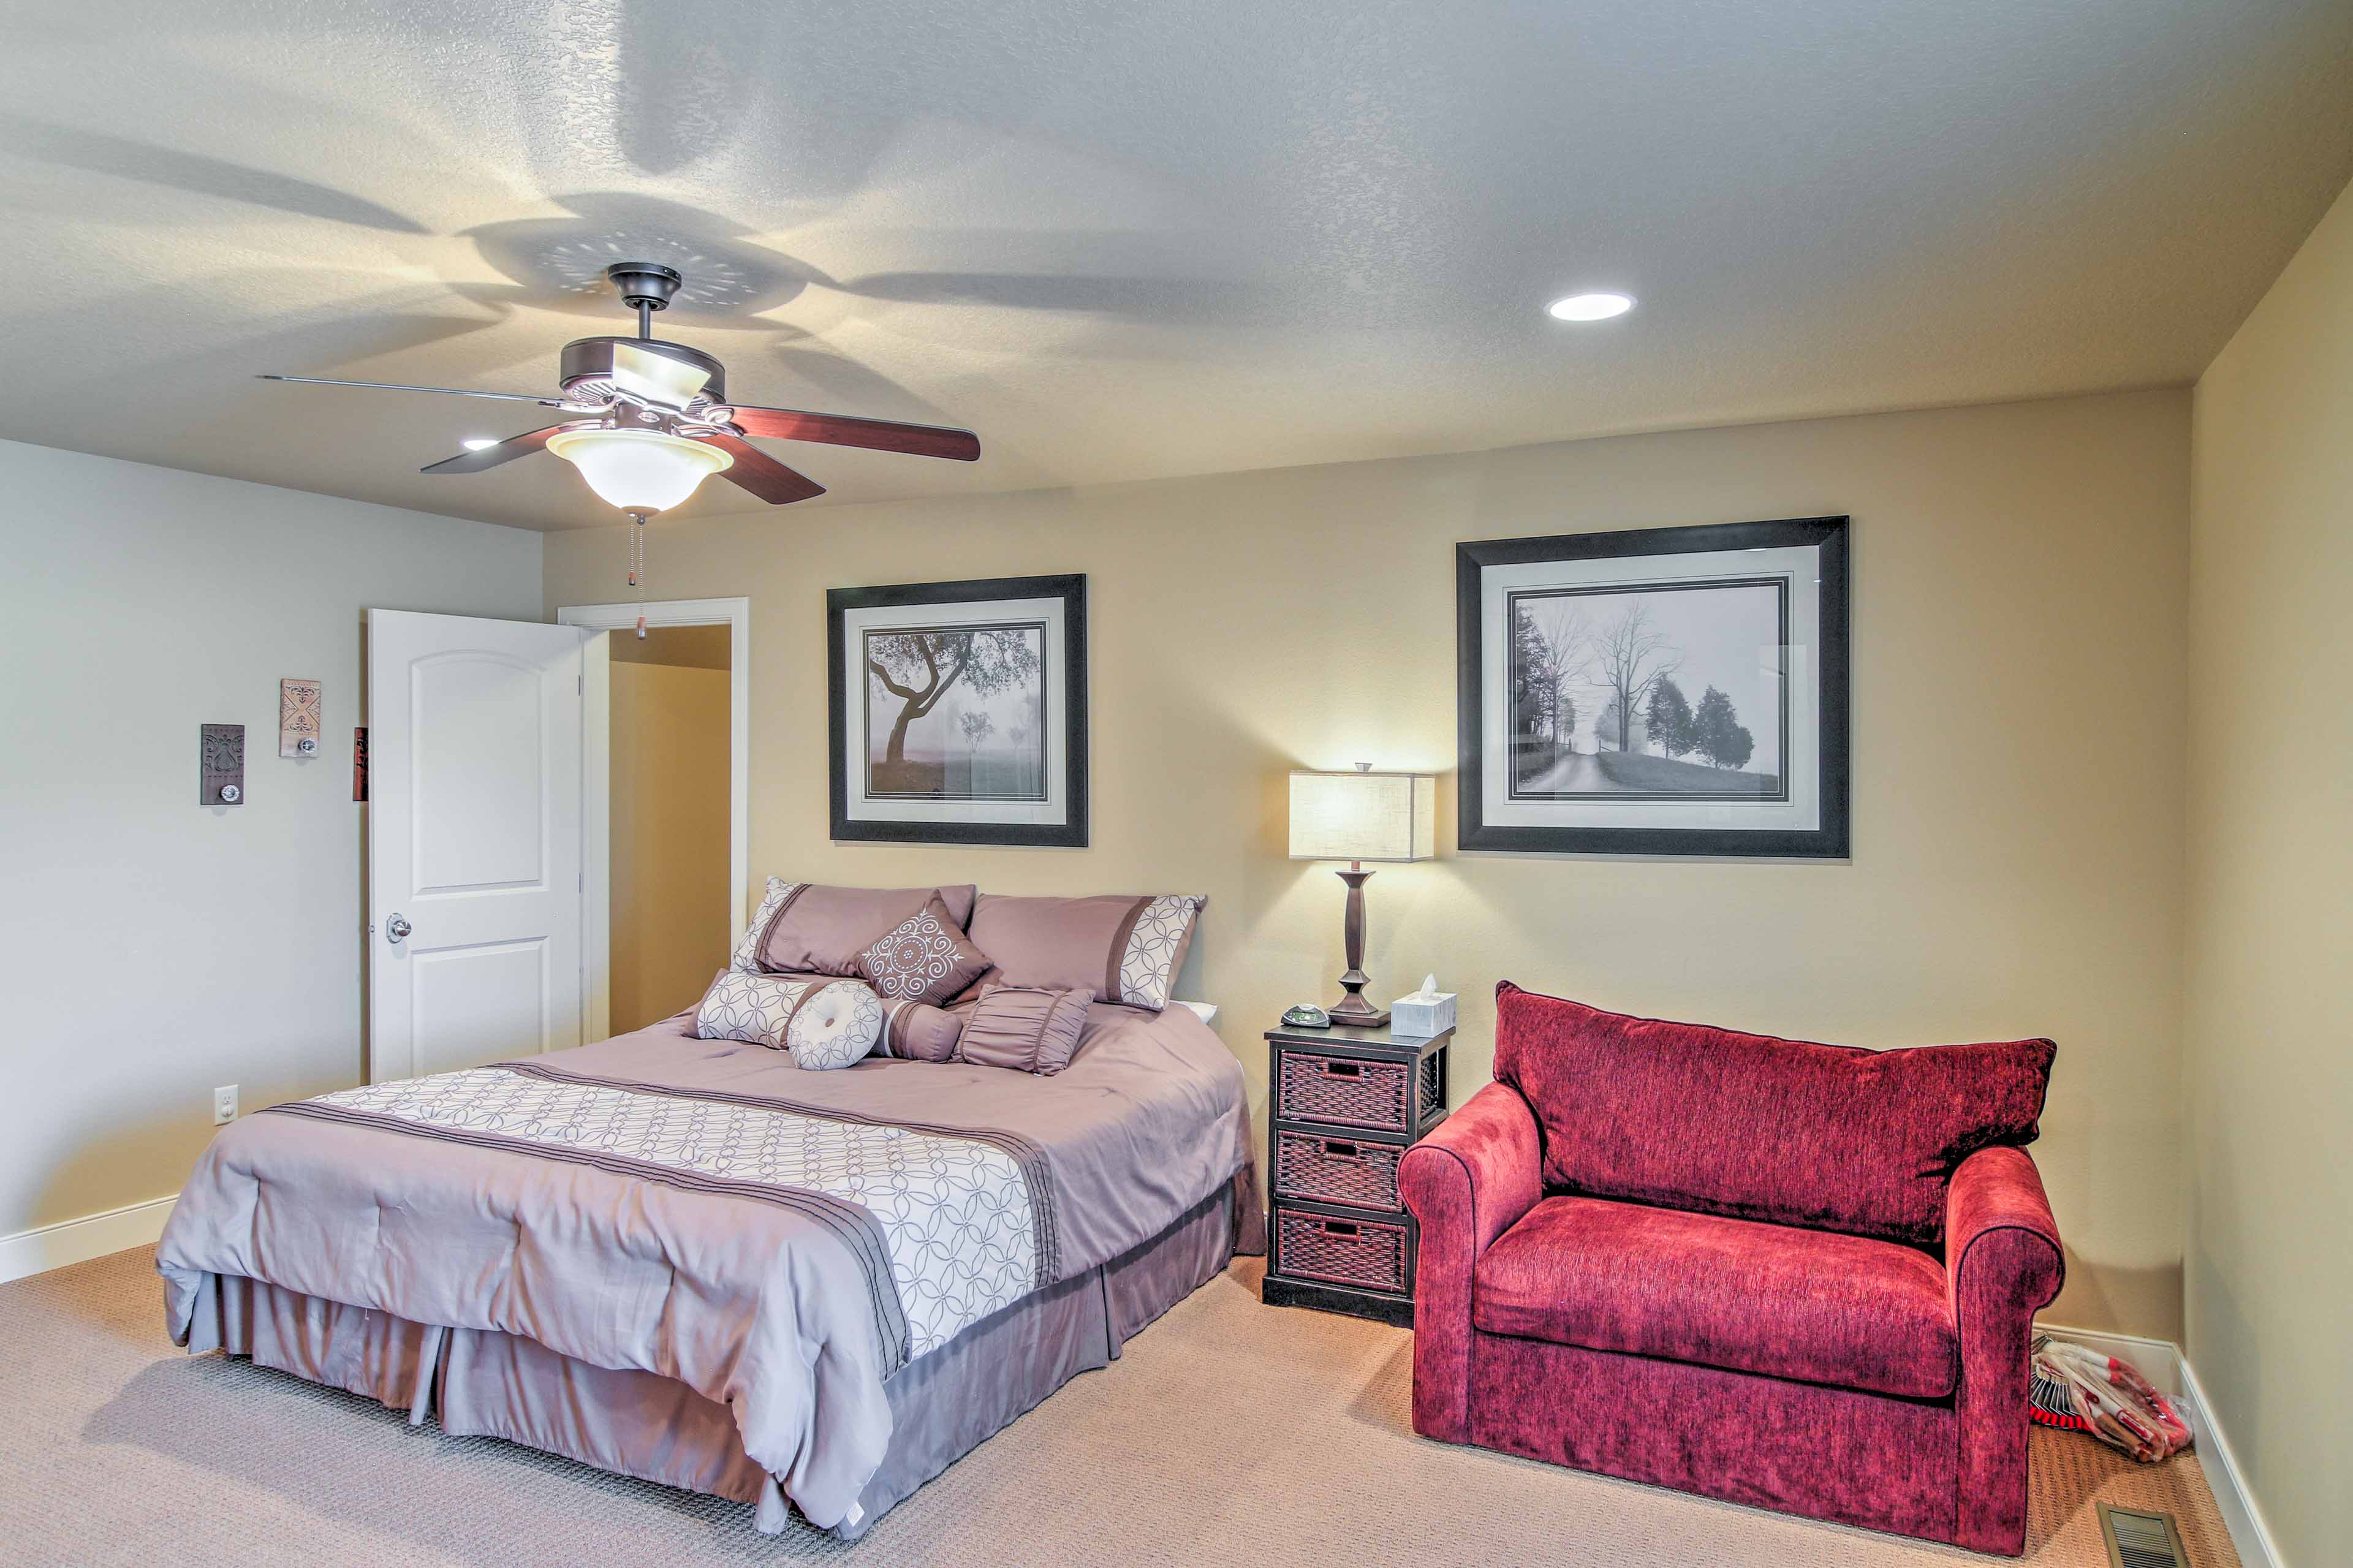 In the third bedroom you'll find a king bed and pullout bed.